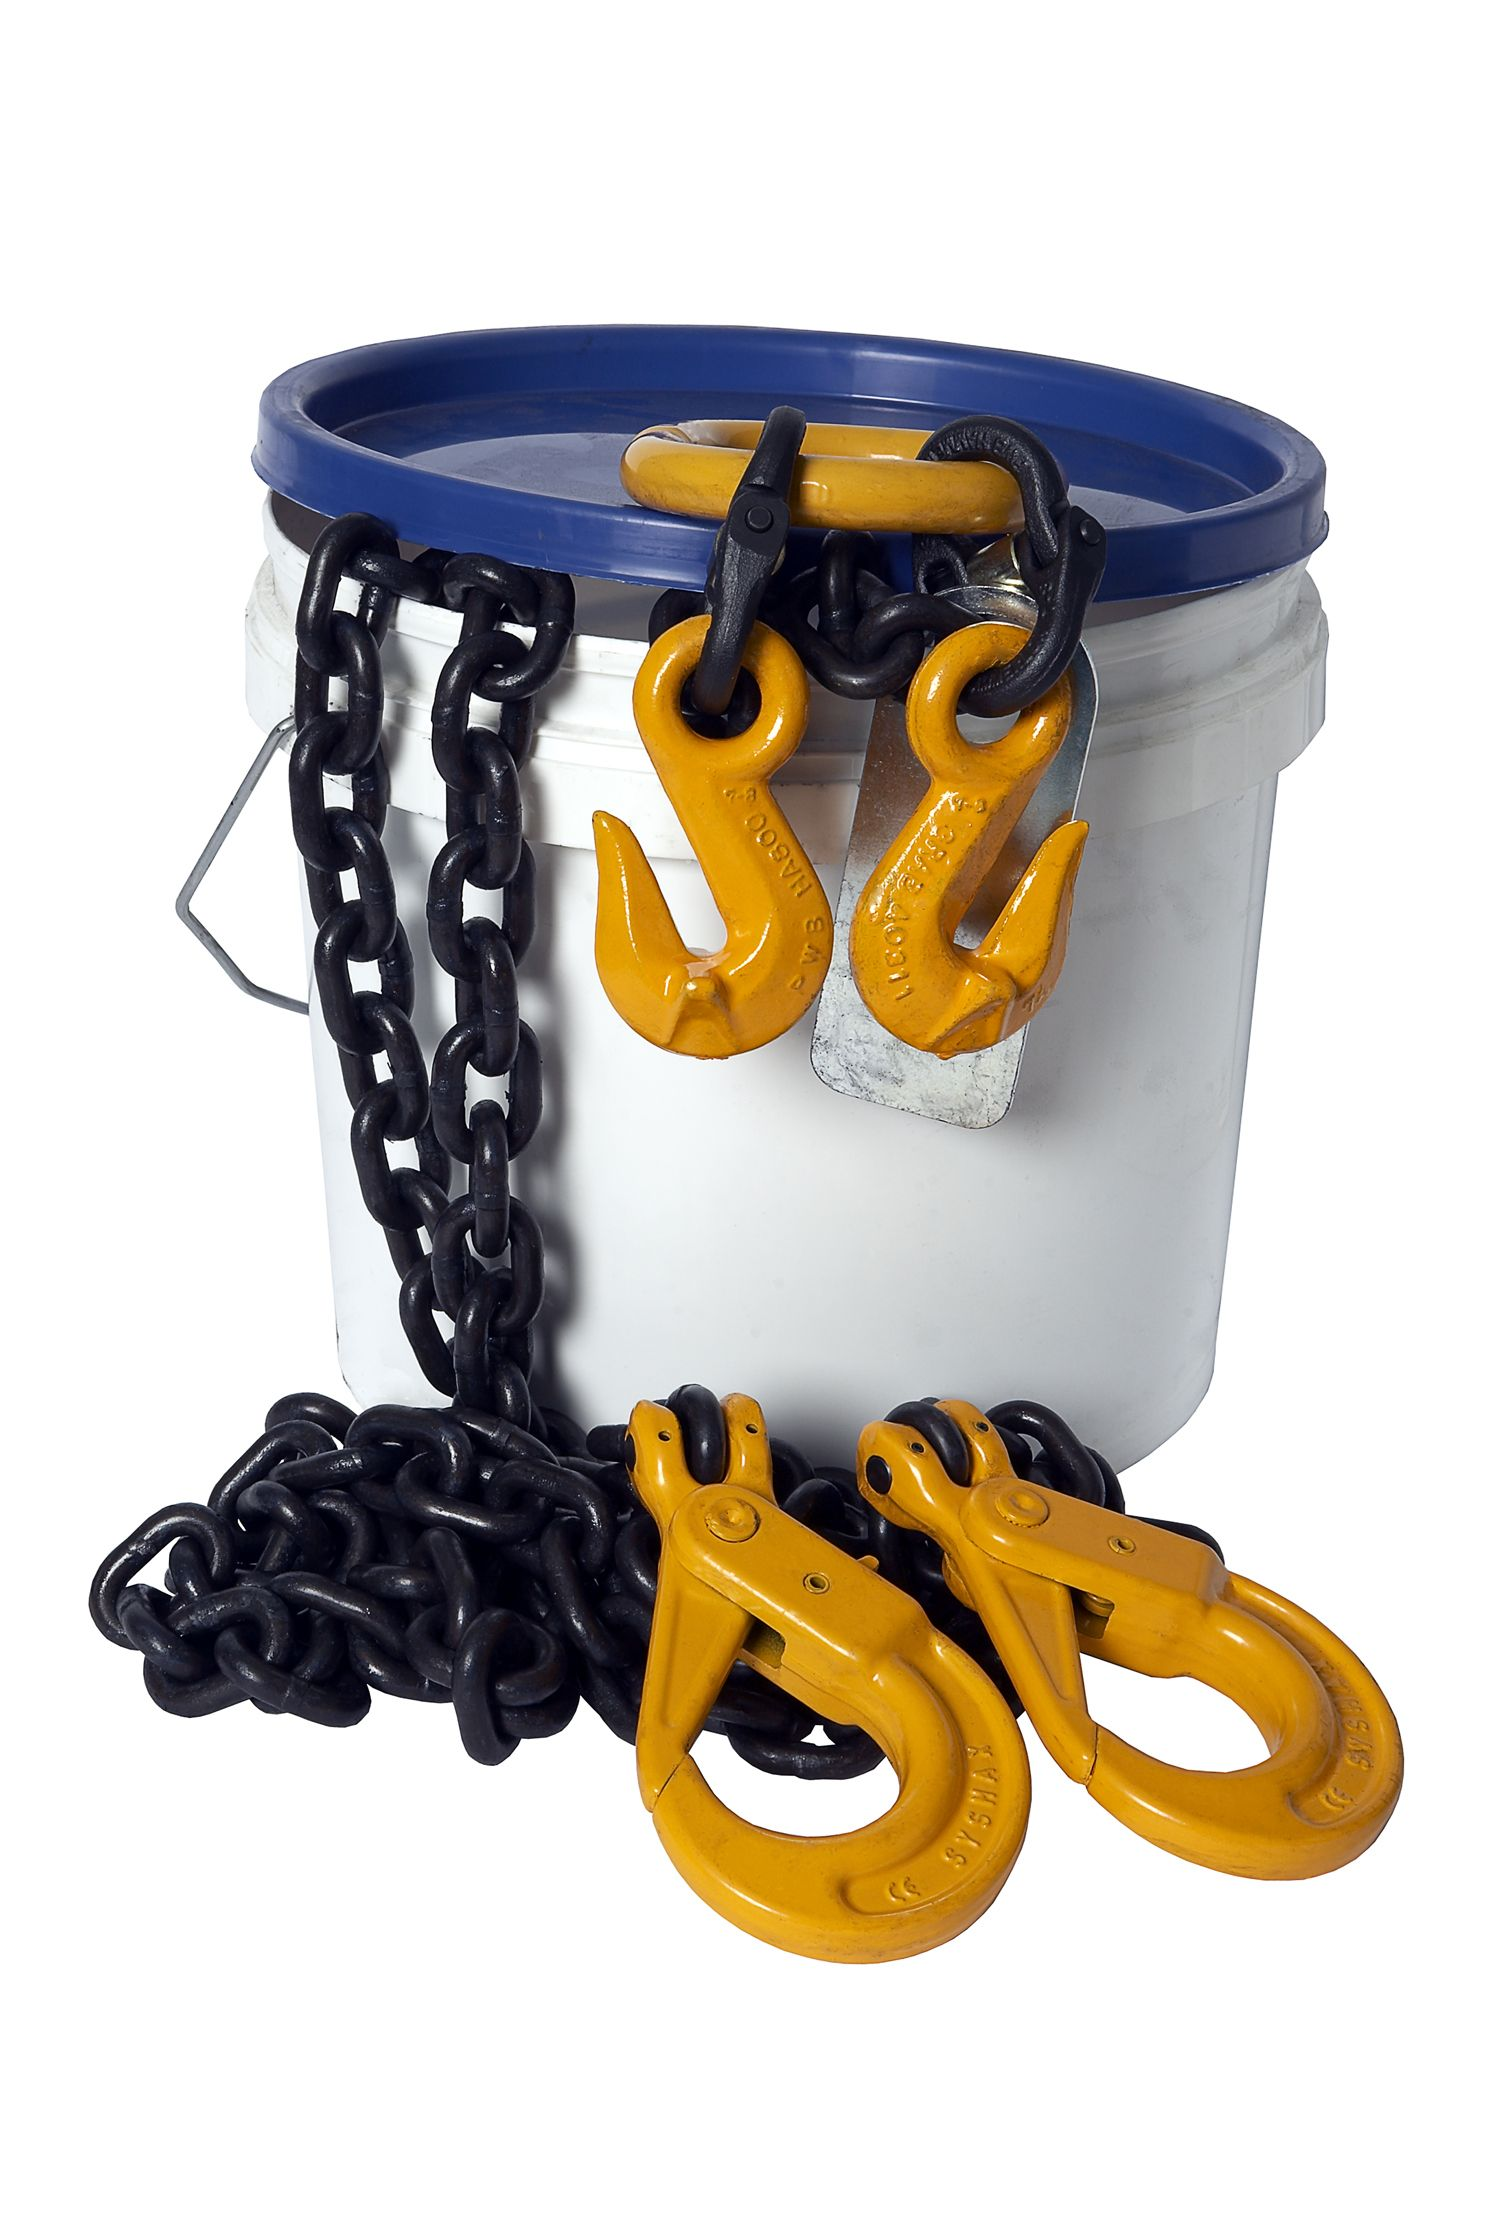 Chain sling Spreader bar, Chain, Guns